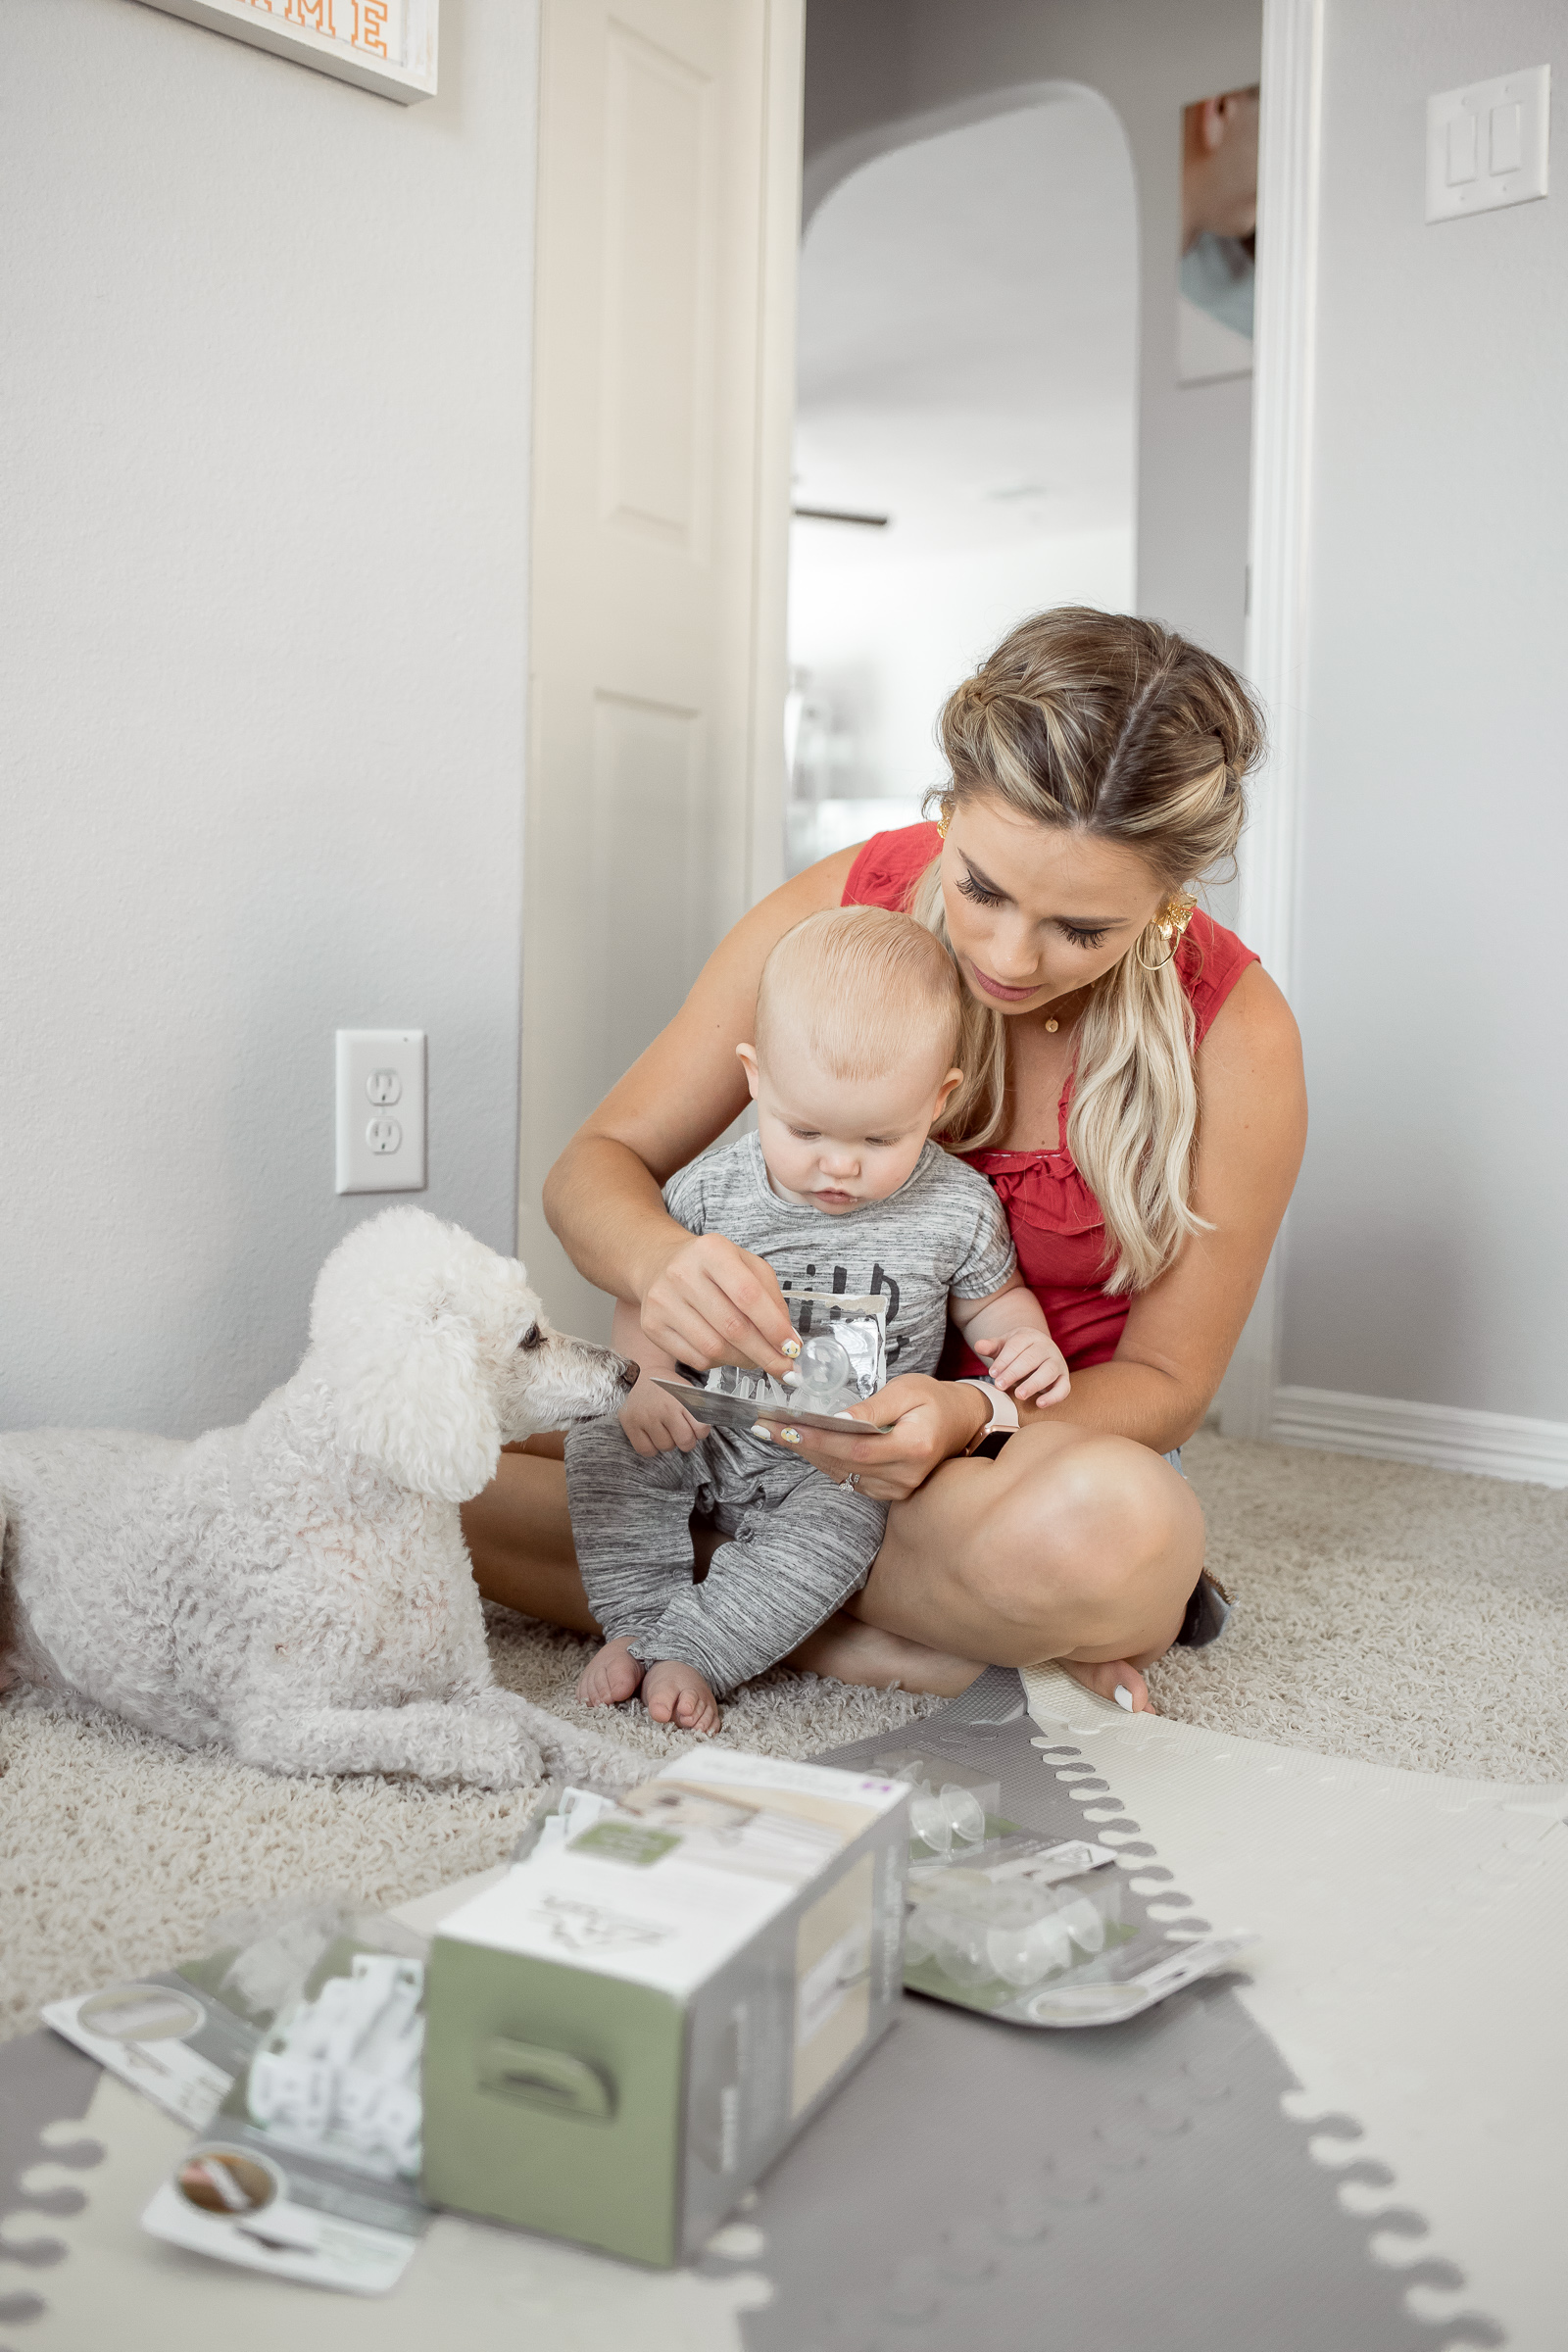 Houston lifestyle blogger Uptown with Elly Brown shares how to baby proof your house with Summer Infant. Click here for more details!